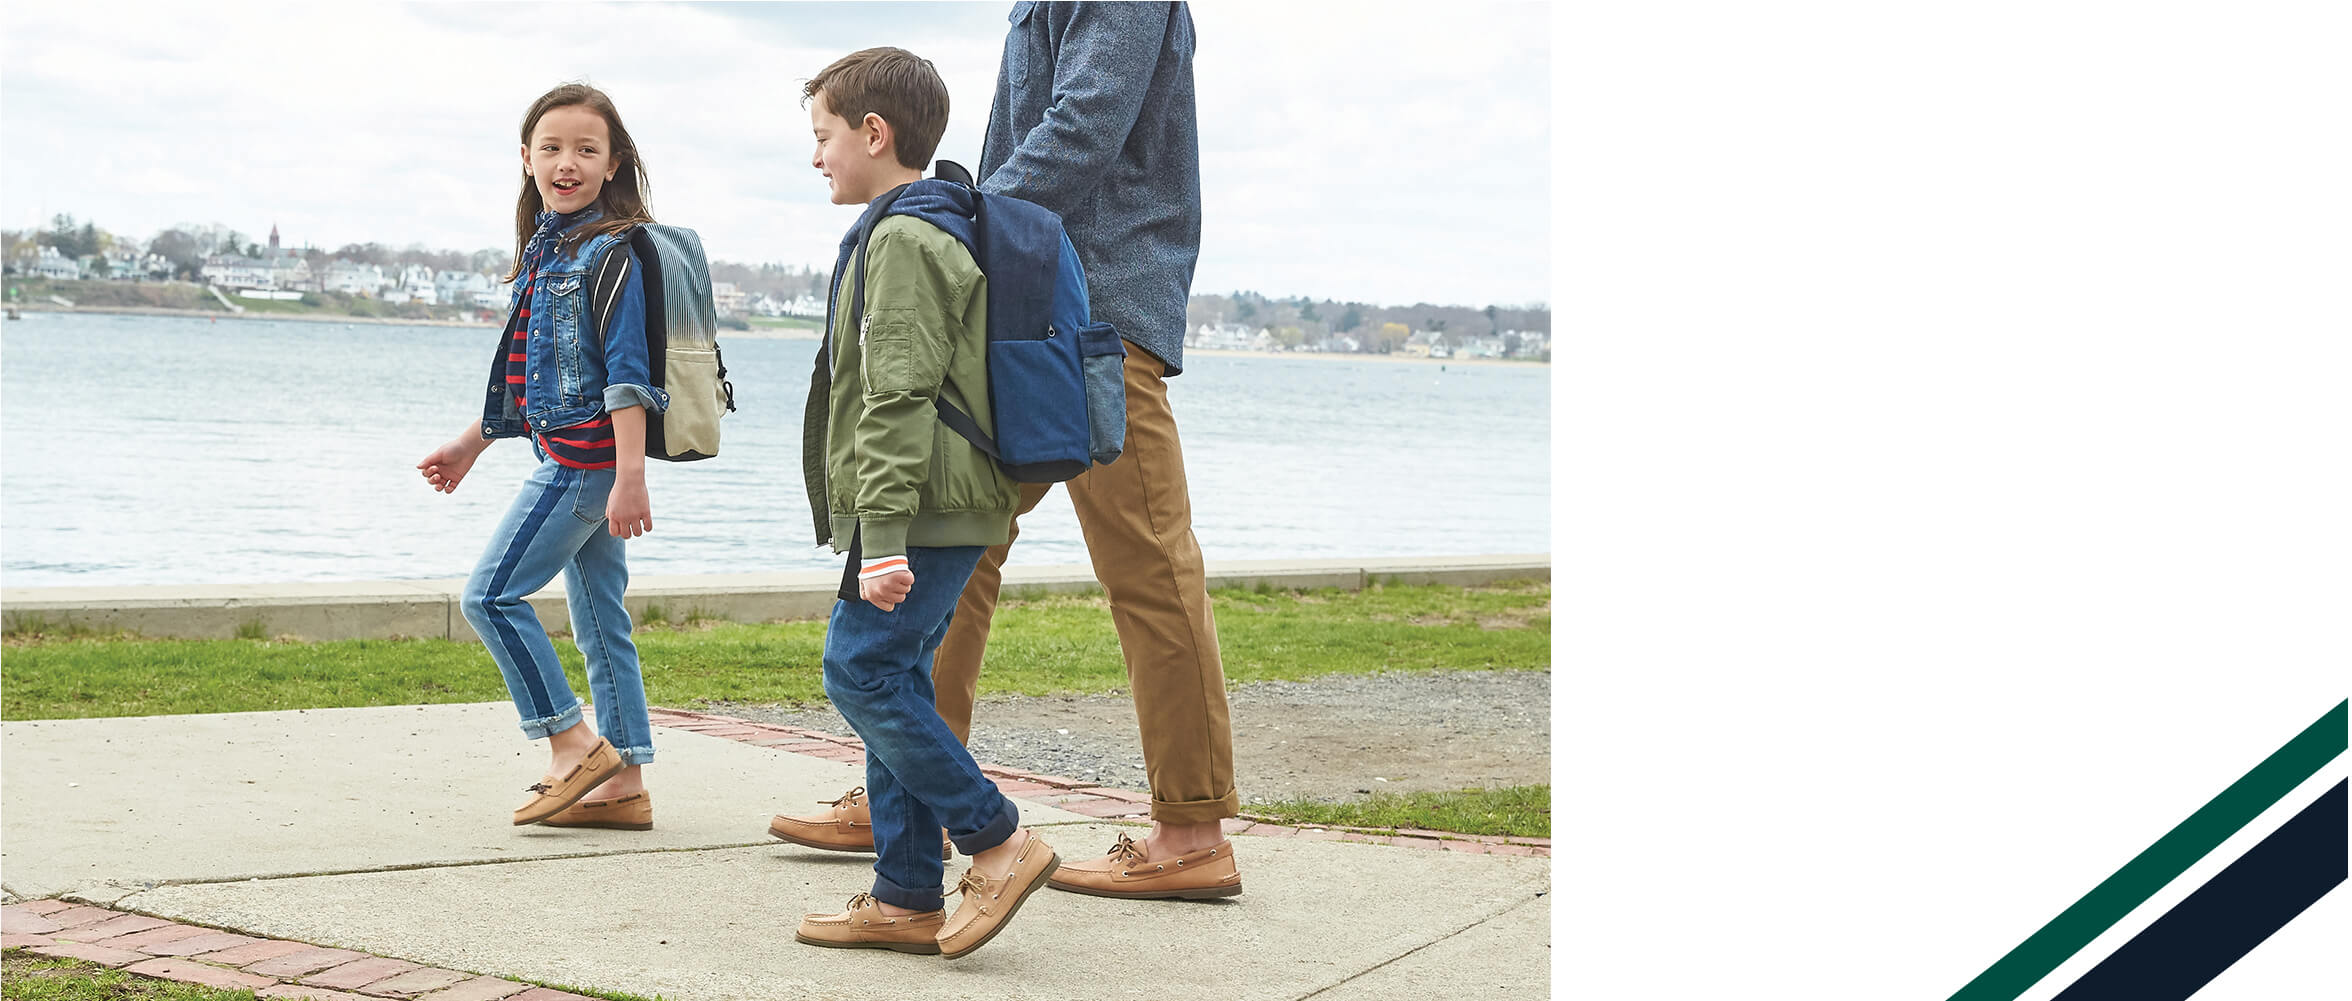 Kids walking along a dock, near water. They have nice shoes.